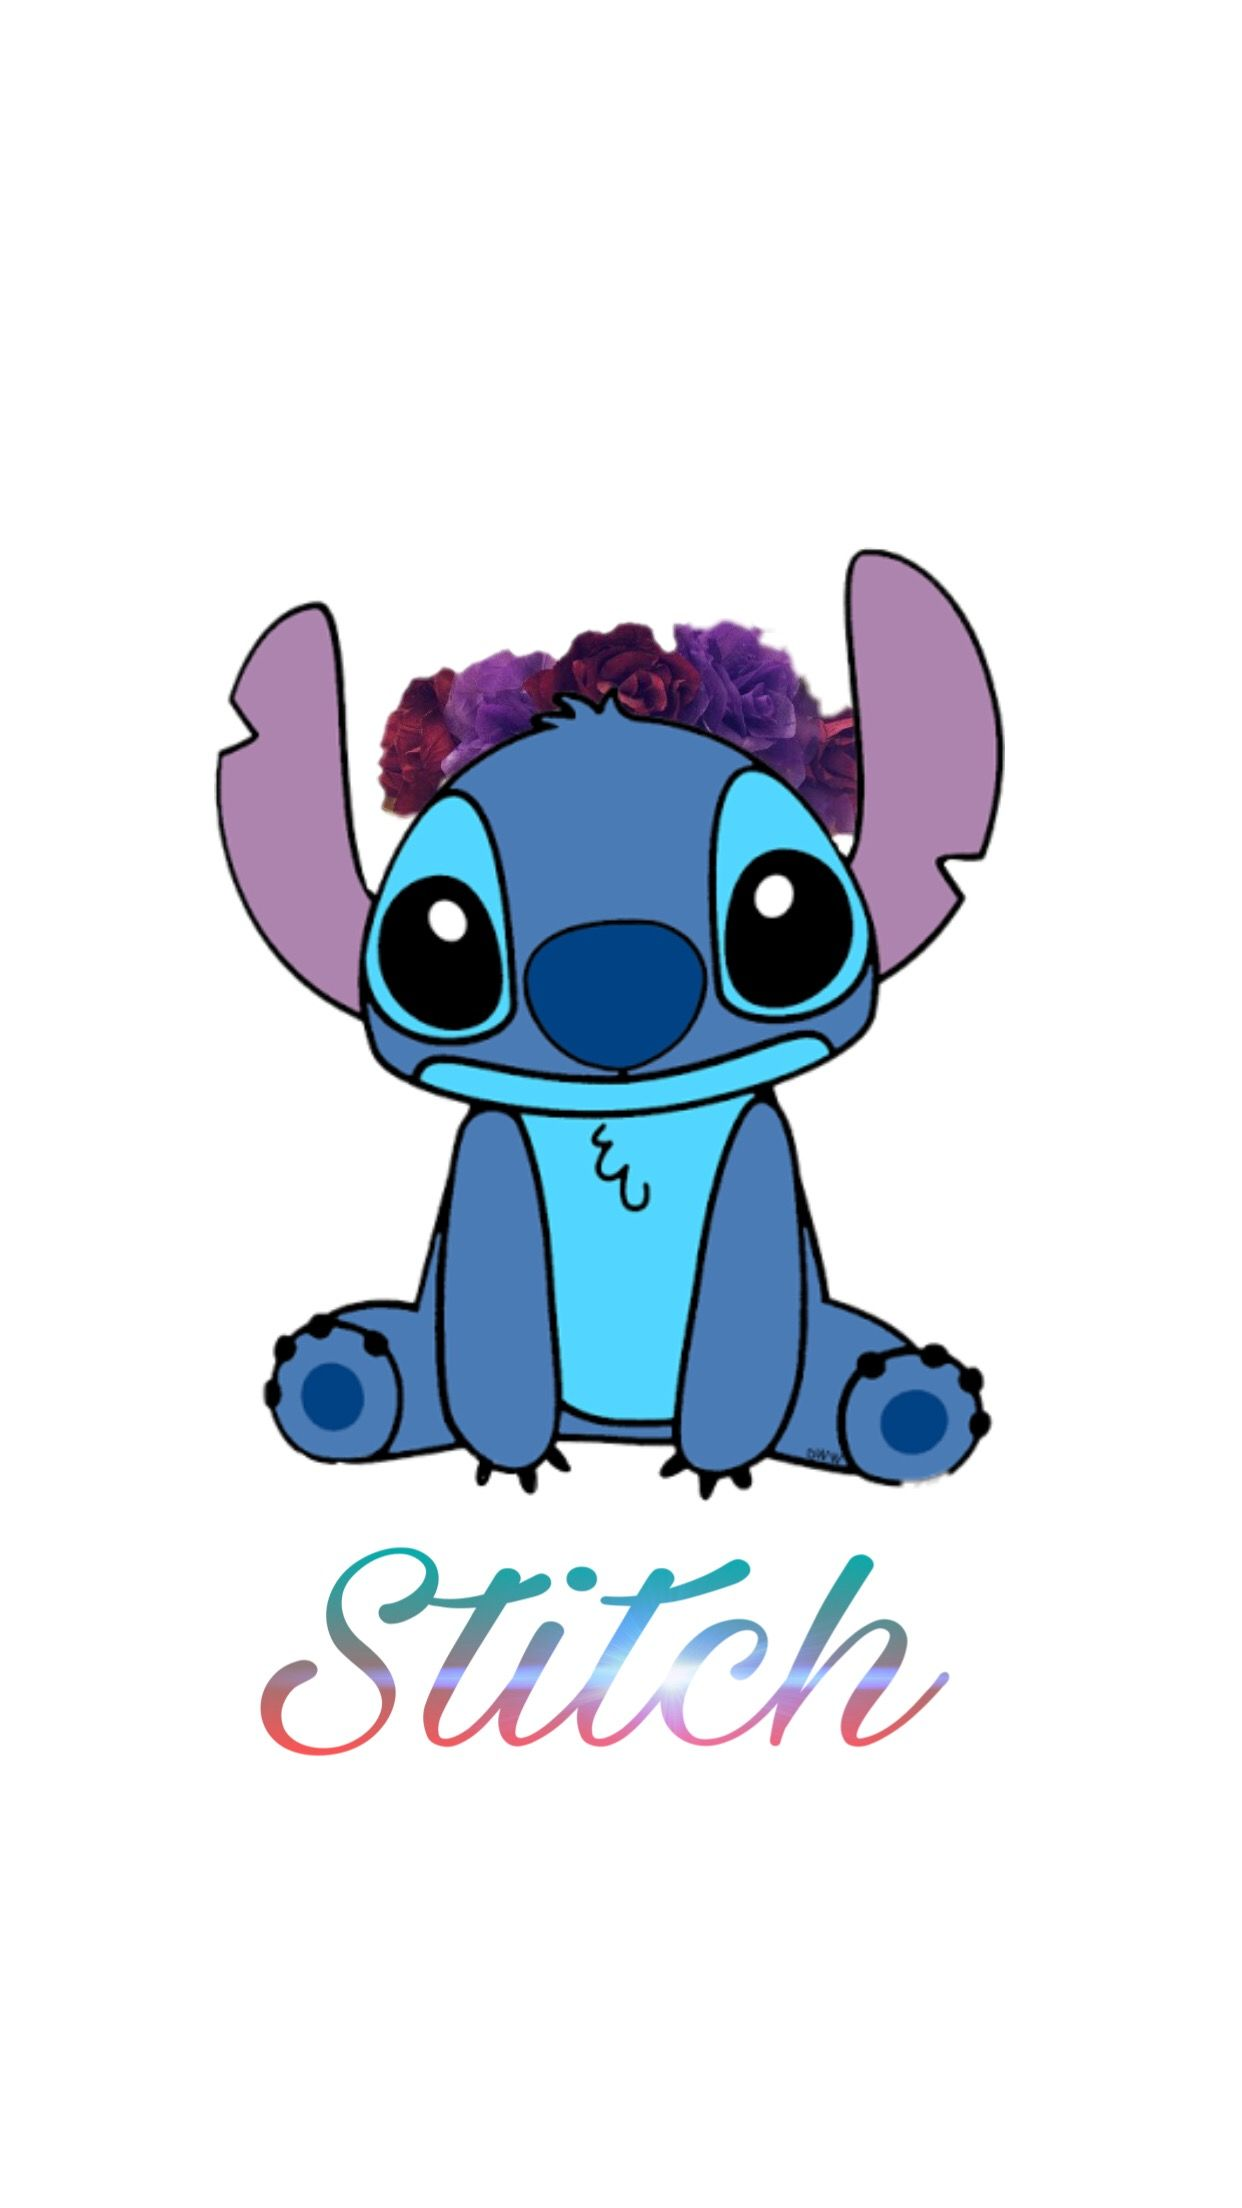 Wallpaper Cute Stitch